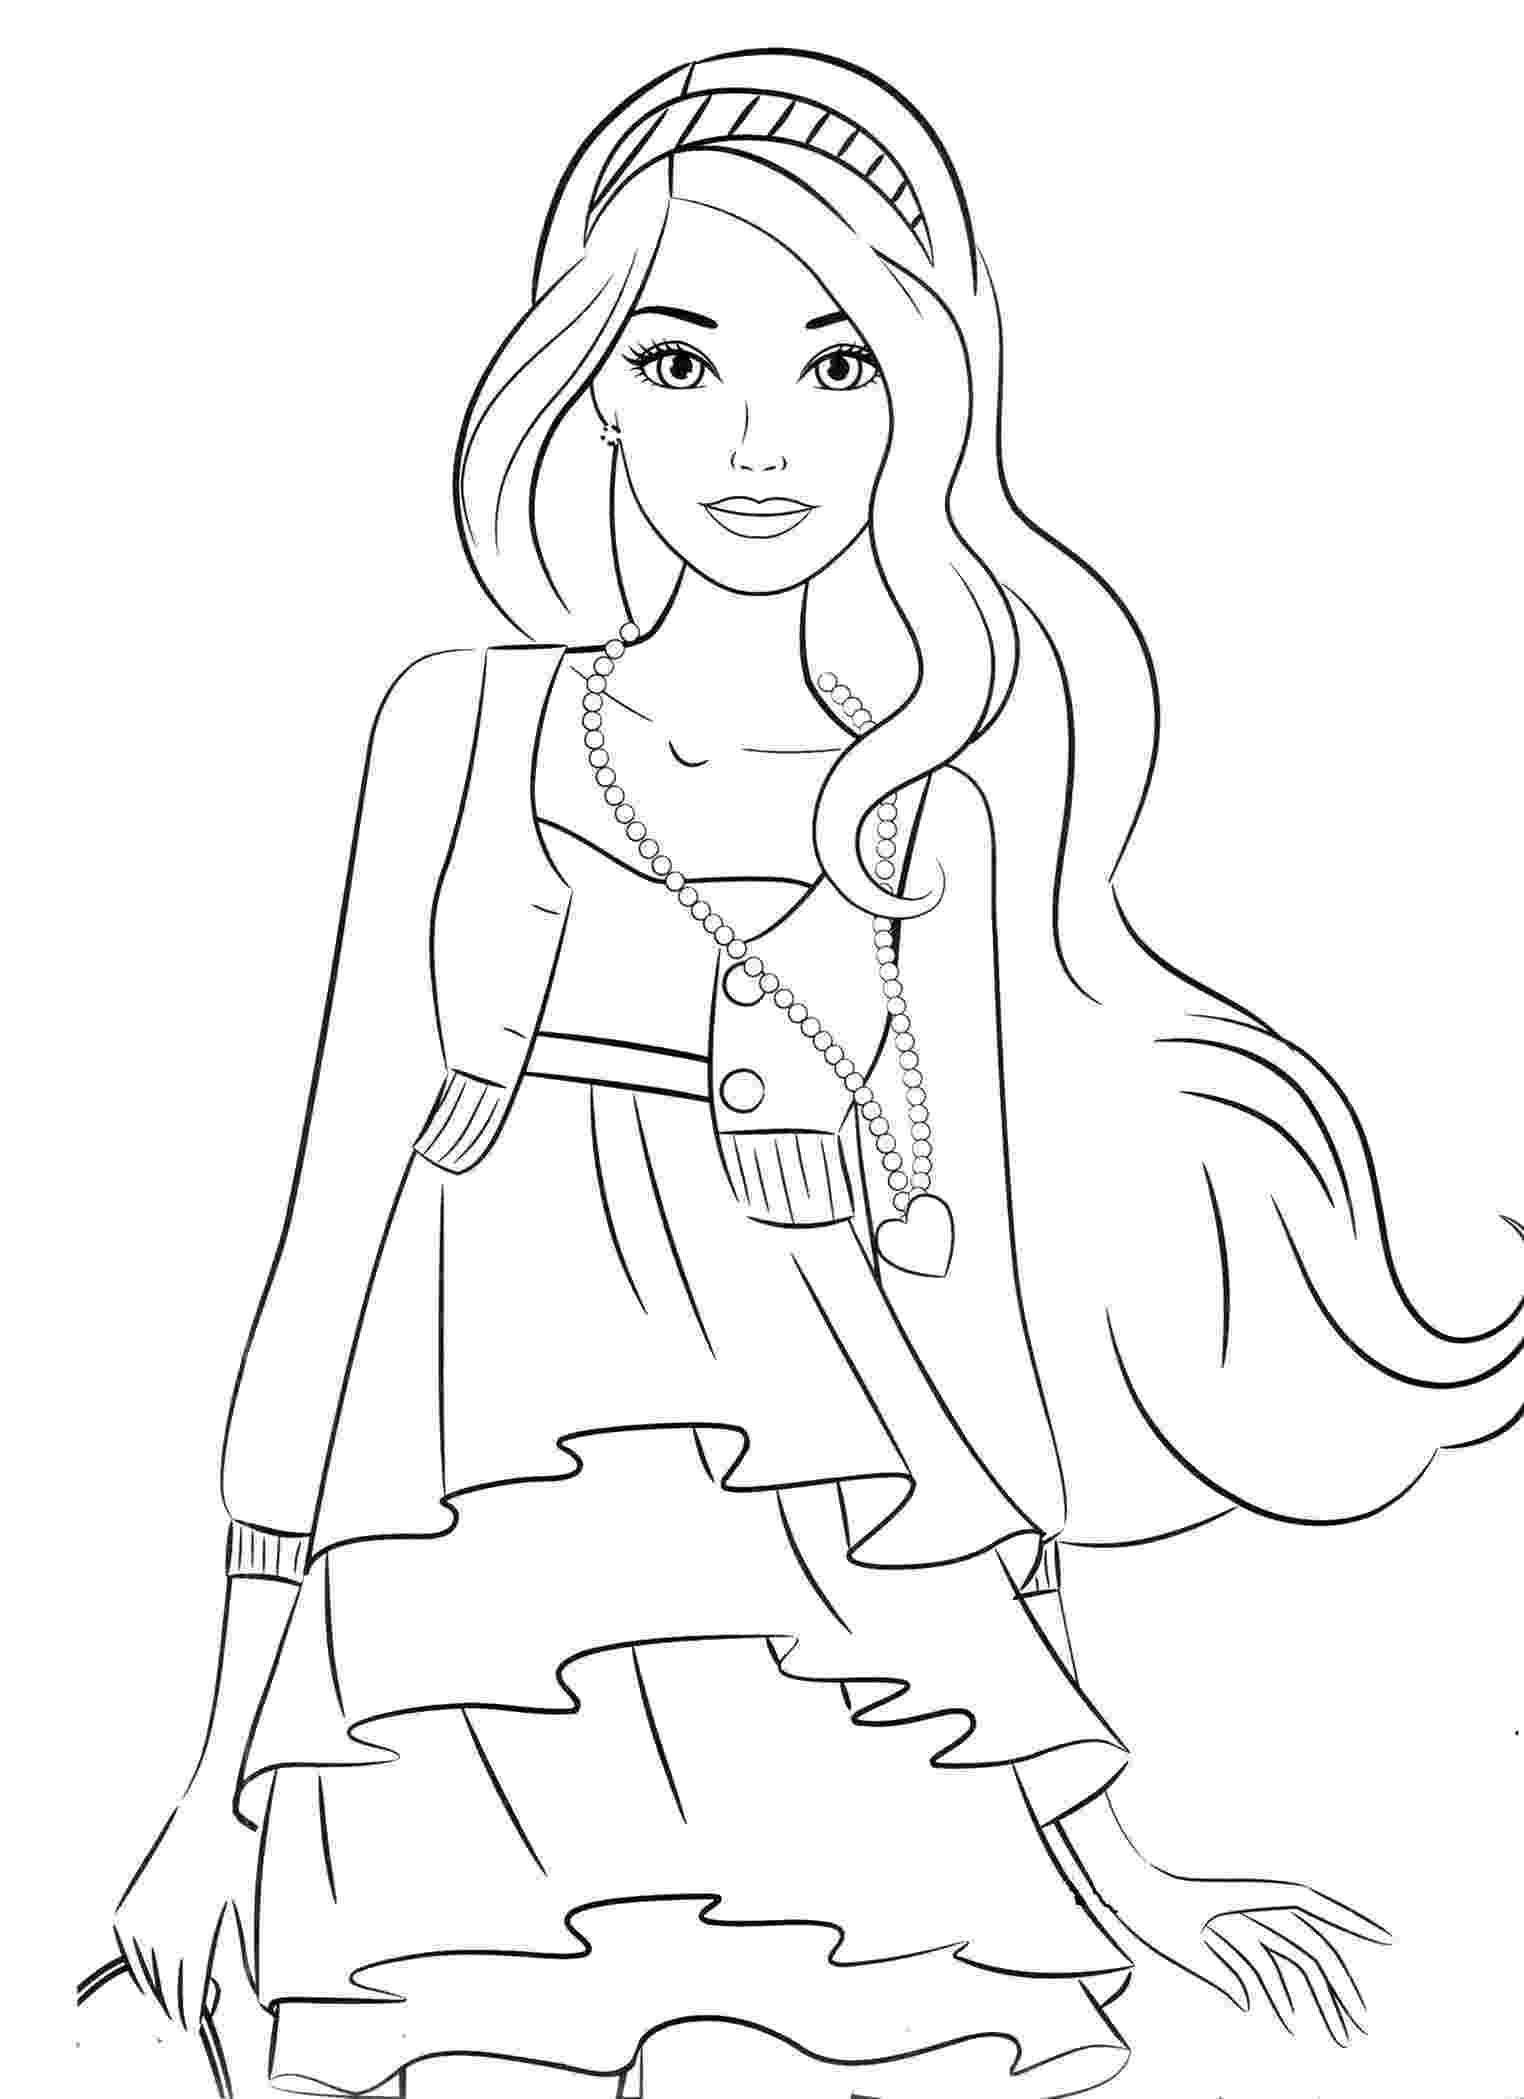 printable coloring pages for 9 year olds coloring pages for 8910 year old girls to download and olds year 9 pages coloring printable for